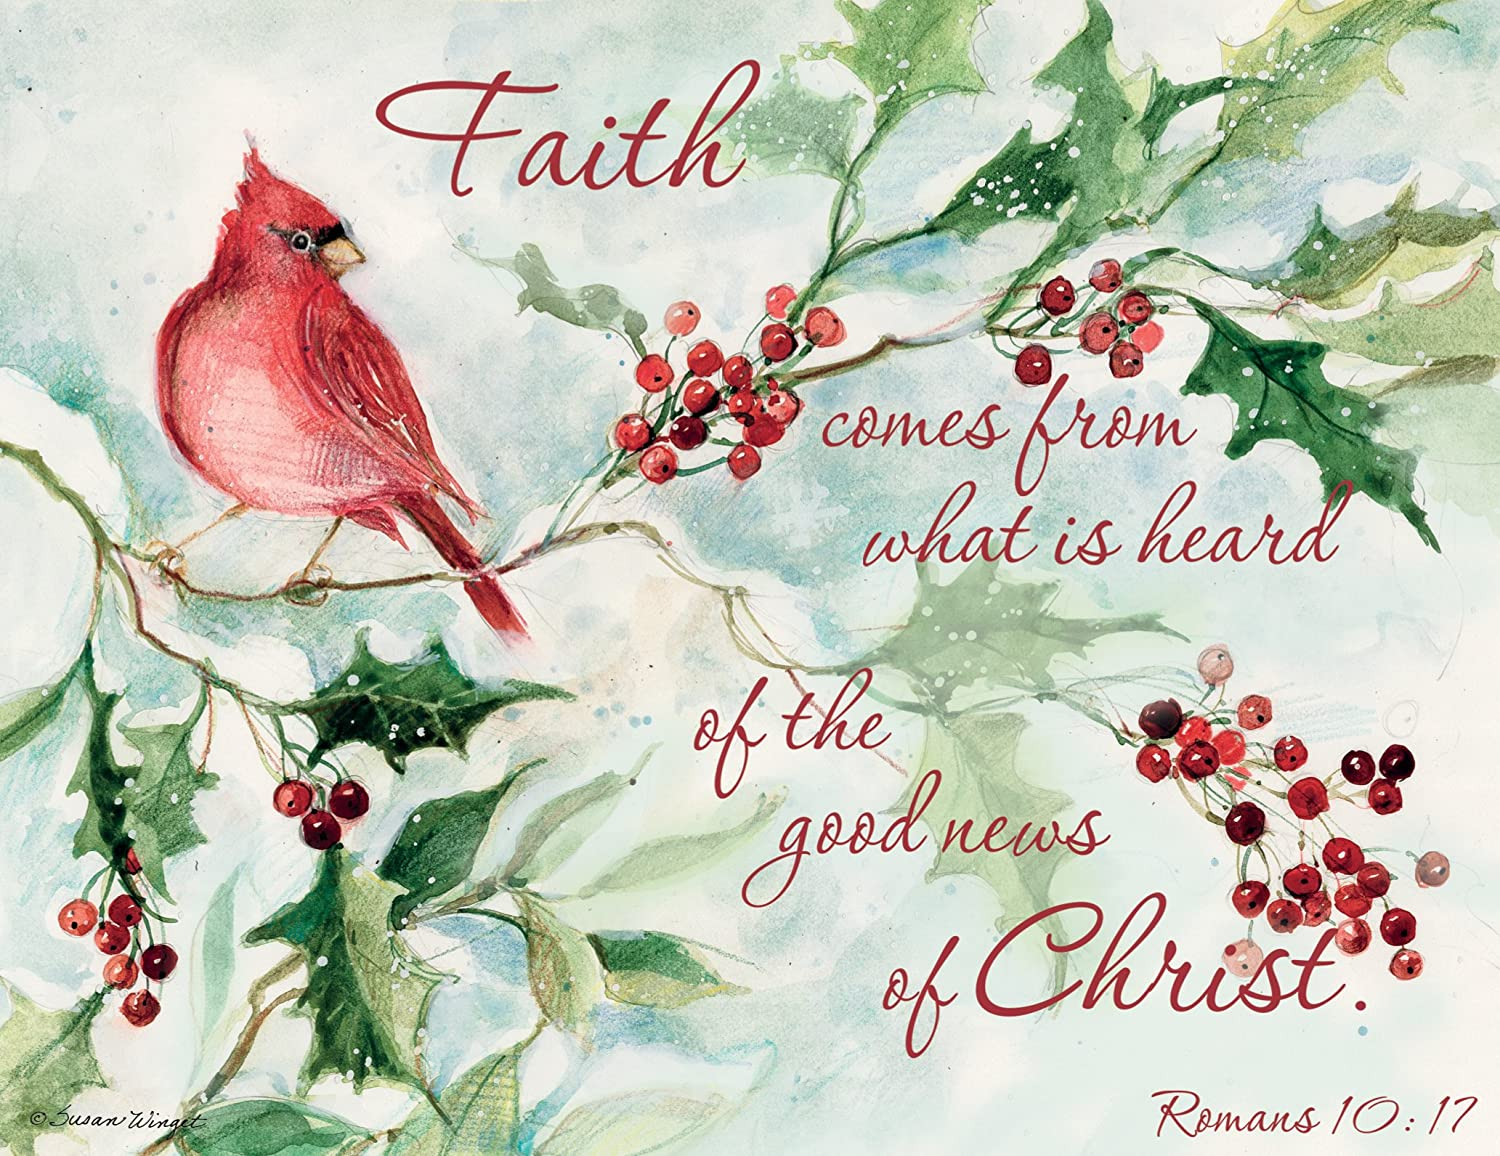 Lang Boxed Christmas Cards 2021 Lang Cardinal And Berries Boxed Christmas Cards Artwork By Susan Winget 18 Cards 19 Envelopes 5 375 X 6 875 Amazon In Office Products